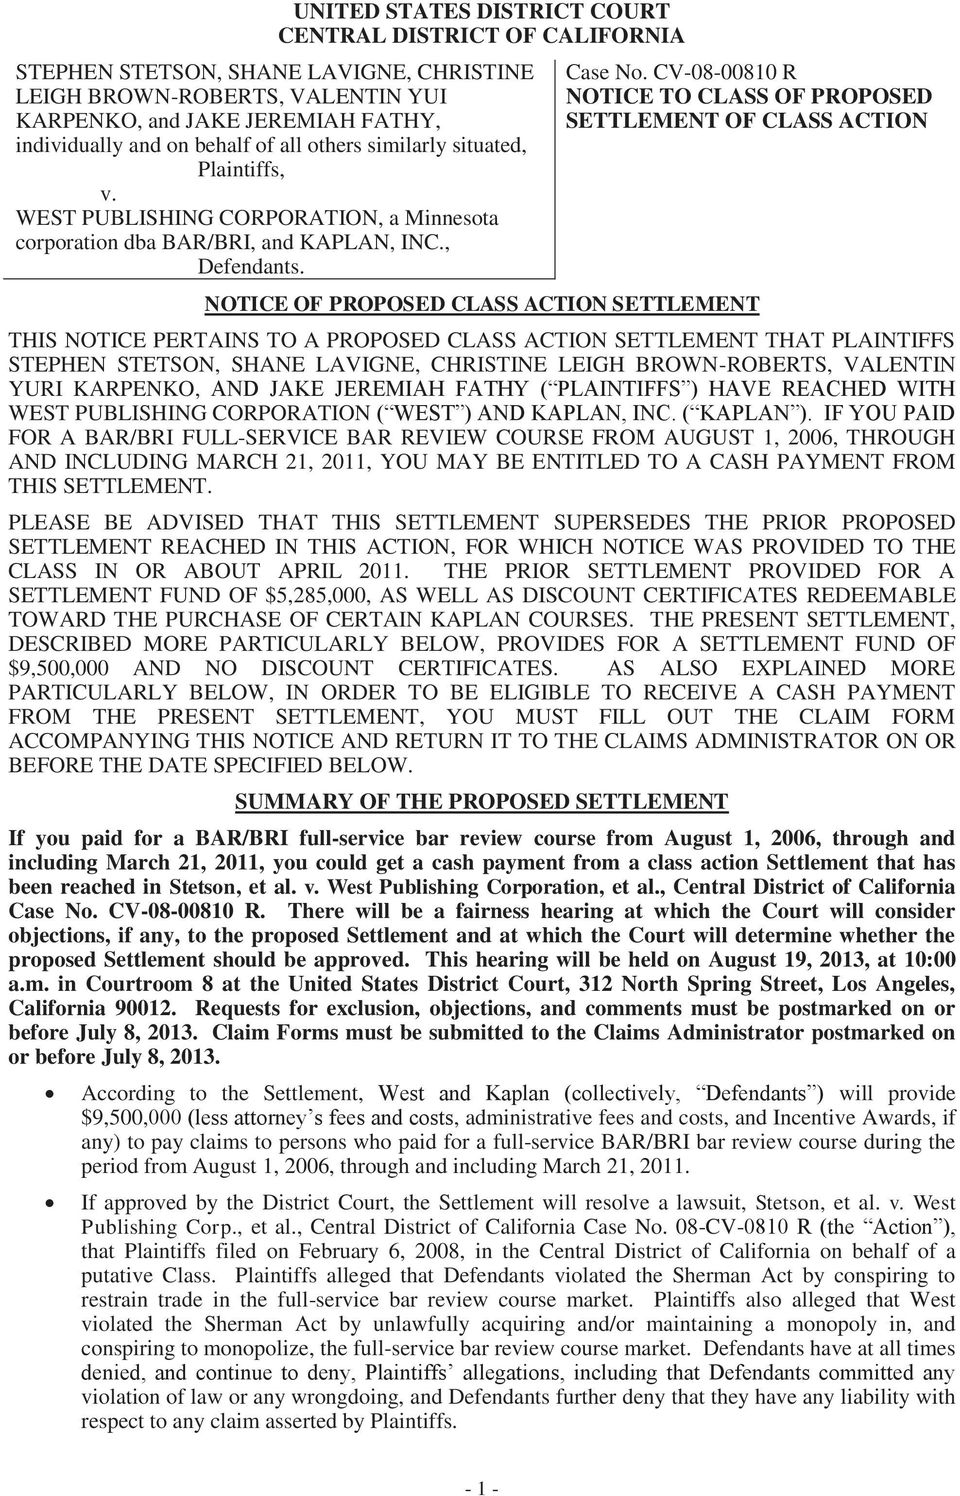 CV-08-00810 R NOTICE TO CLASS OF PROPOSED SETTLEMENT OF CLASS ACTION NOTICE OF PROPOSED CLASS ACTION SETTLEMENT THIS NOTICE PERTAINS TO A PROPOSED CLASS ACTION SETTLEMENT THAT PLAINTIFFS STEPHEN